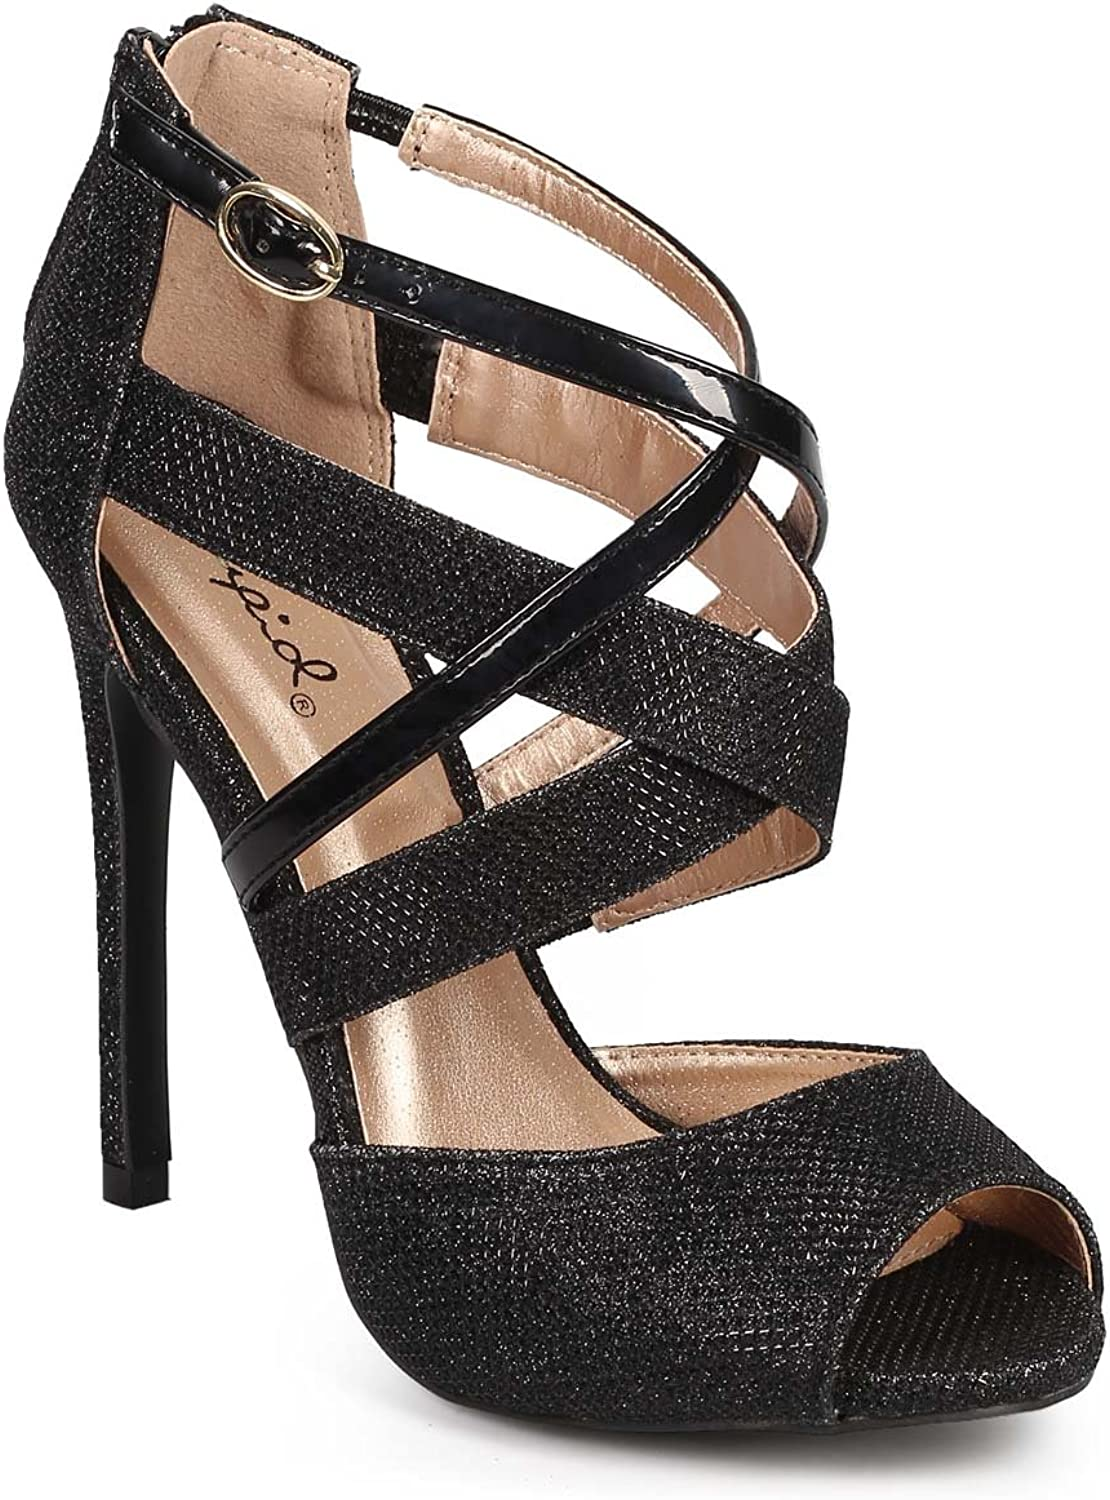 Qupid DF93 Women Glitter Peep Toe Criss Cross Stiletto Heel Sandal - Black